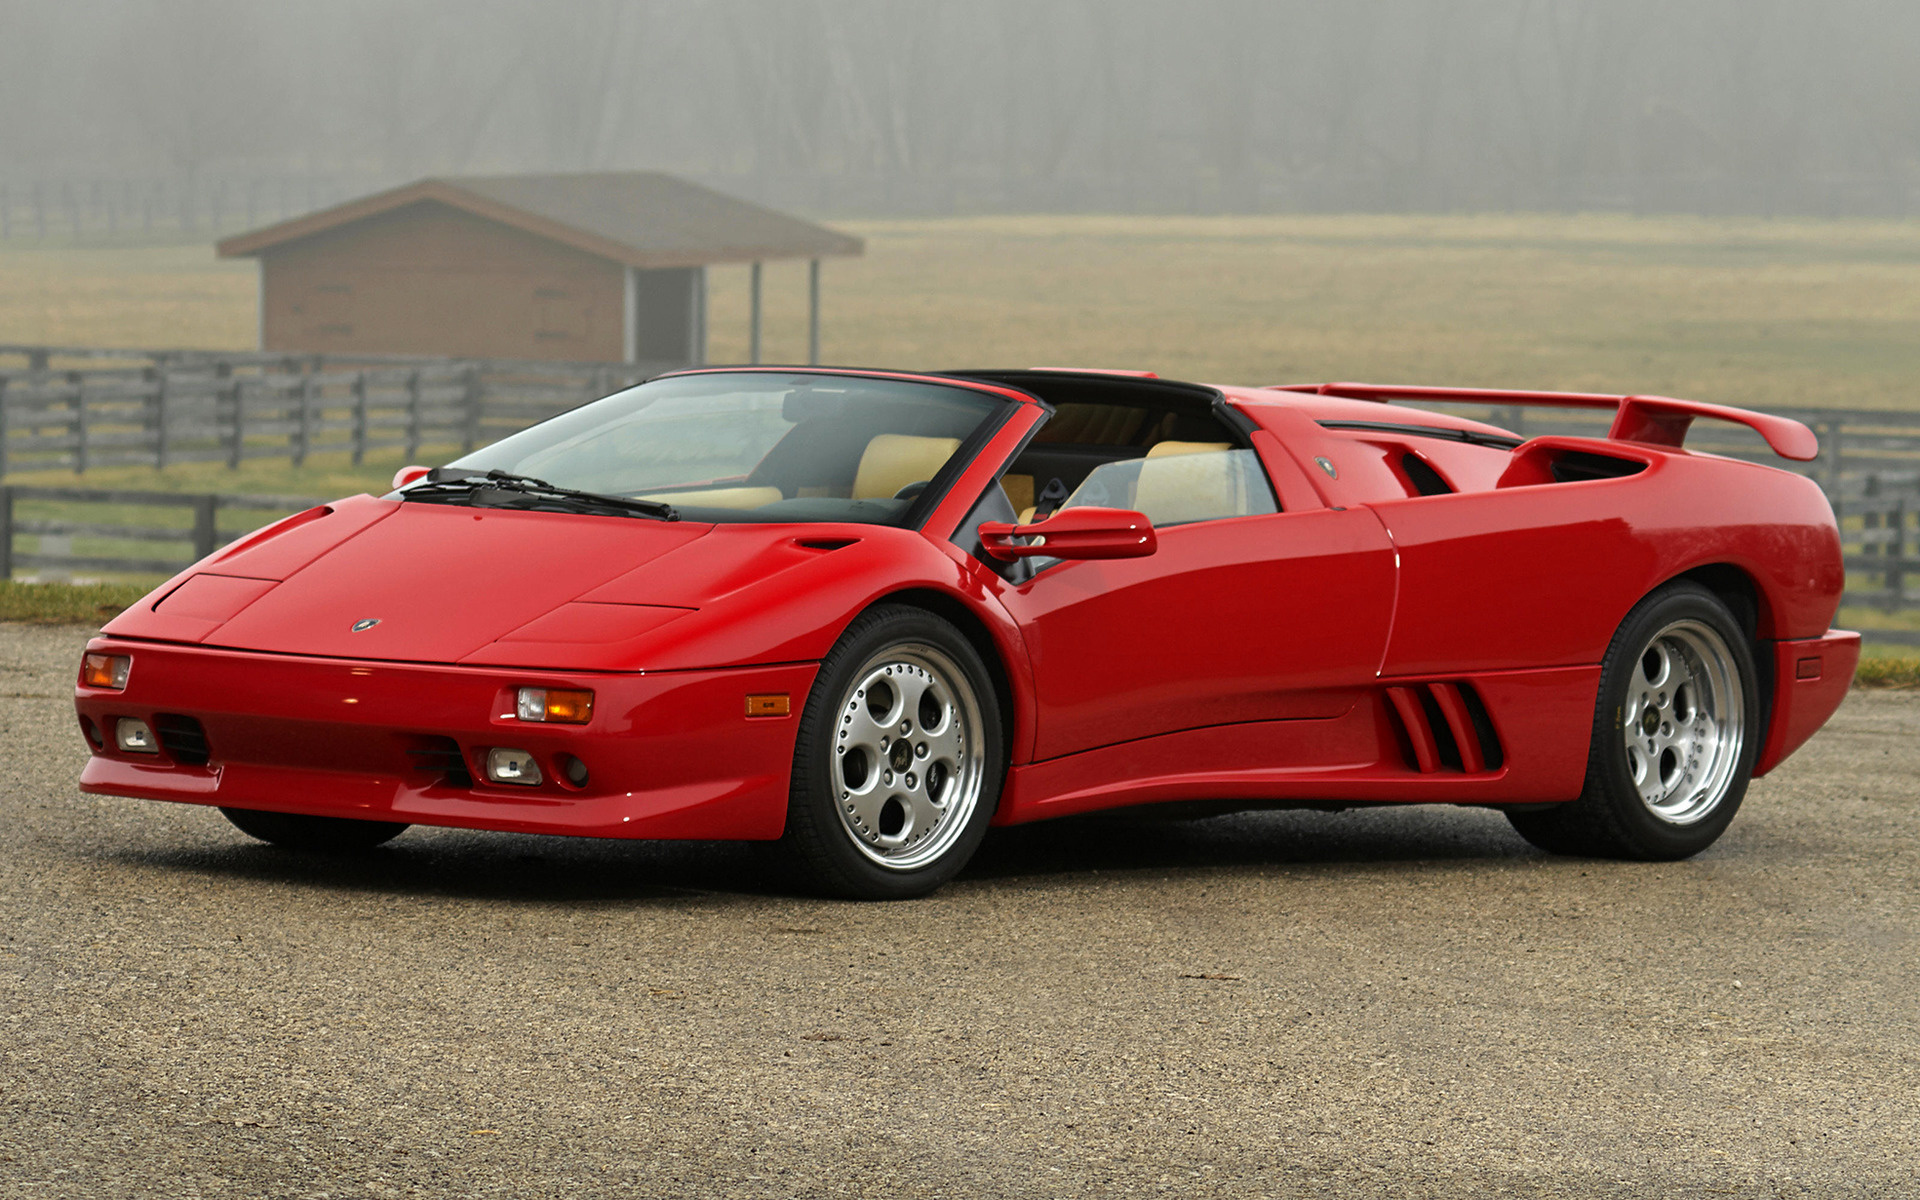 Lamborghini Diablo Vt Roadster Car Wallpaper